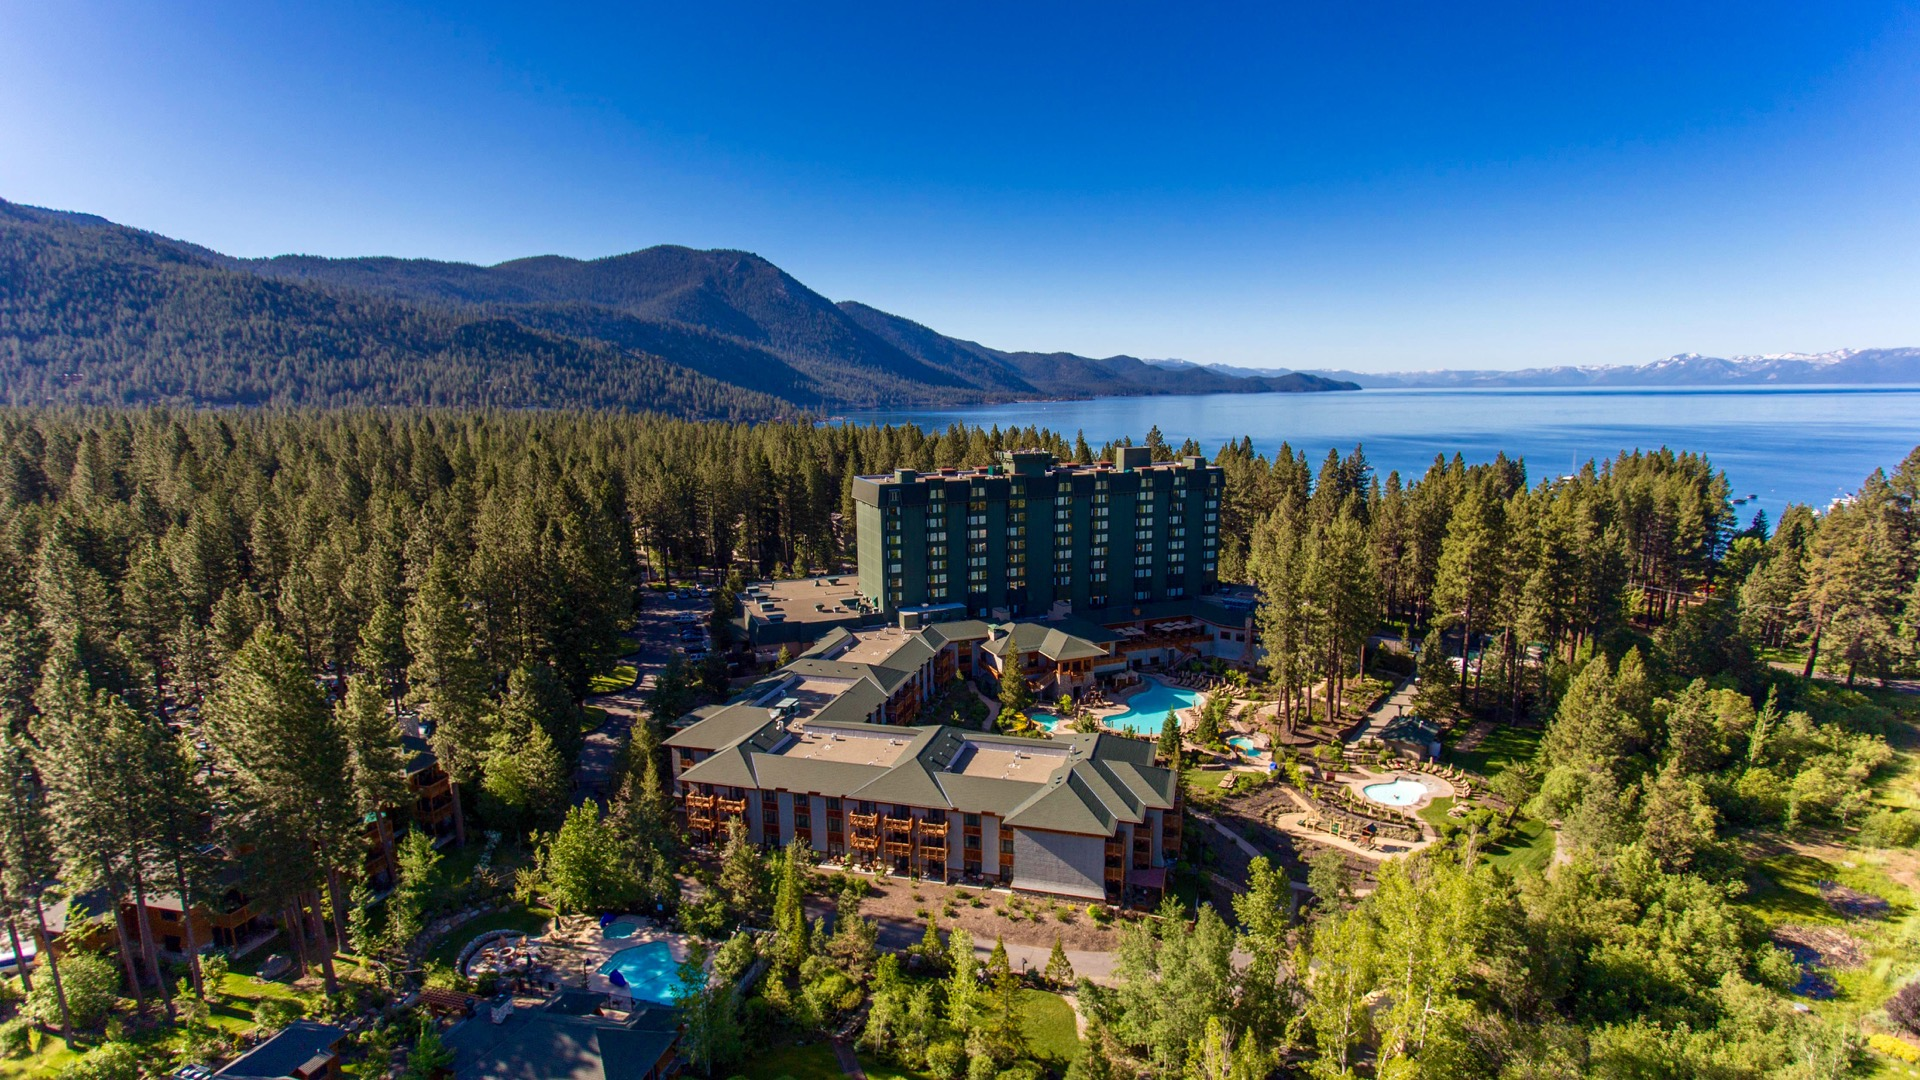 Lake+tahoe+casino+resorts casino lido venice